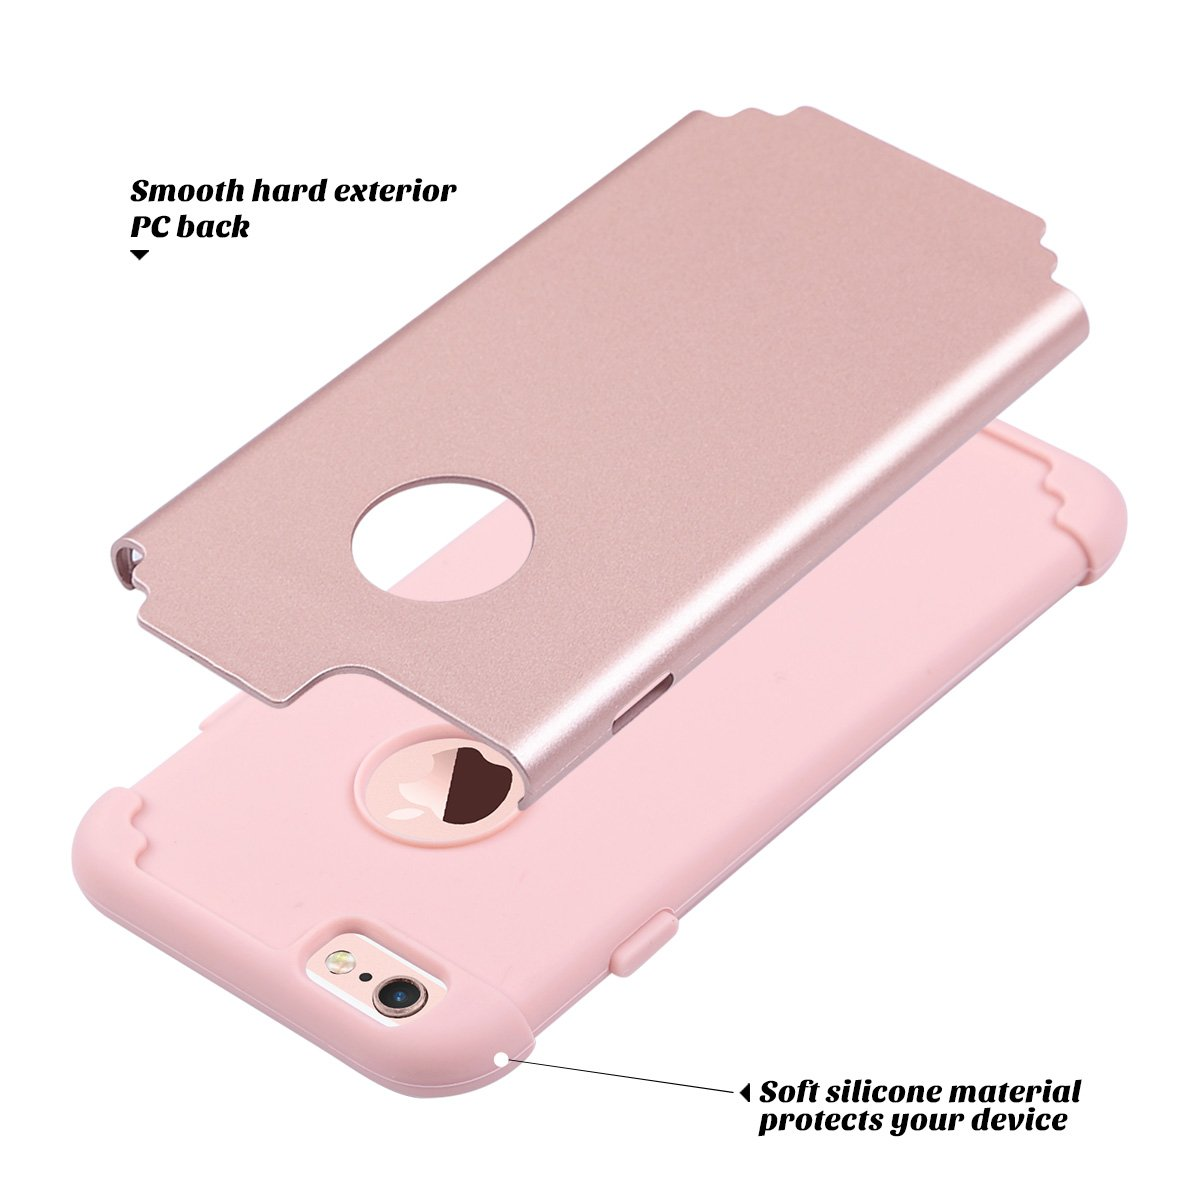 6S 4.7 inch iPhone 6 Case Rose Gold Slim Fit Dual Layer Soft Silicone /& Hard Back Cover Bumper Protective Shock-Absorption /& Skid-Proof Anti-Scratch Case for Apple iPhone 6 ULAK iPhone 6S Case